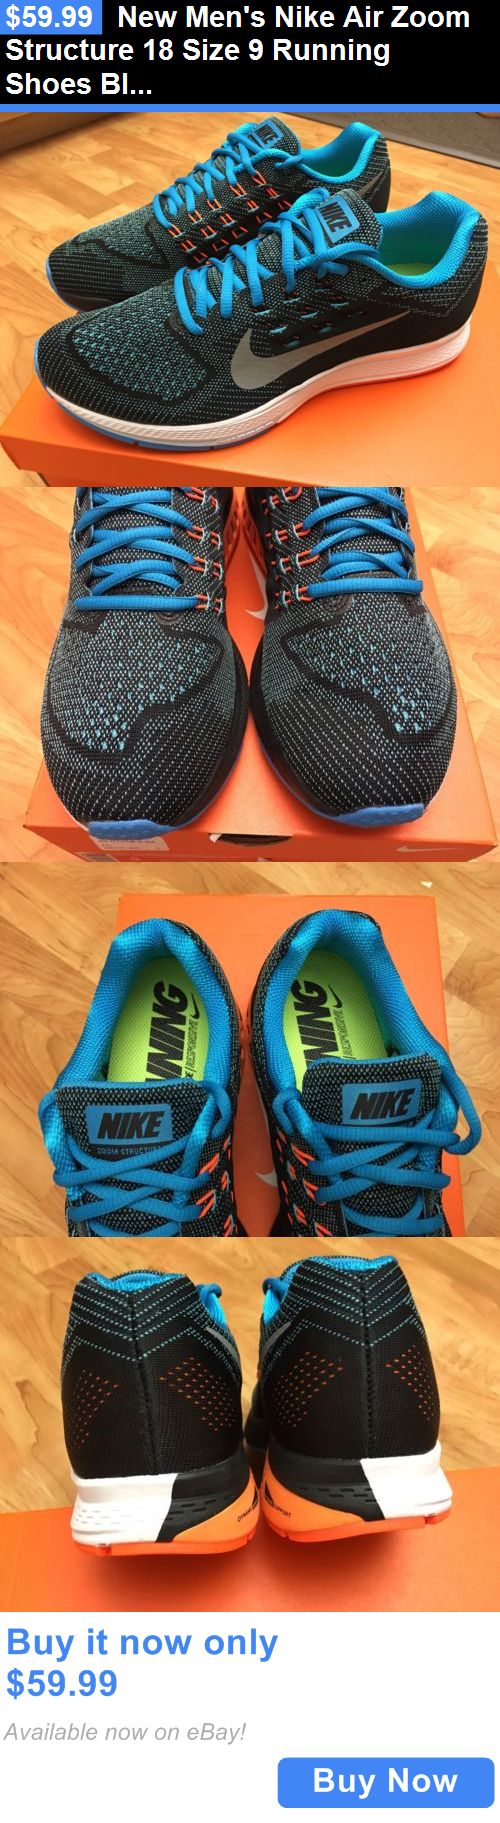 Men Shoes: New Mens Nike Air Zoom Structure 18 Size 9 Running Shoes Black Blue BUY IT NOW ONLY: $59.99